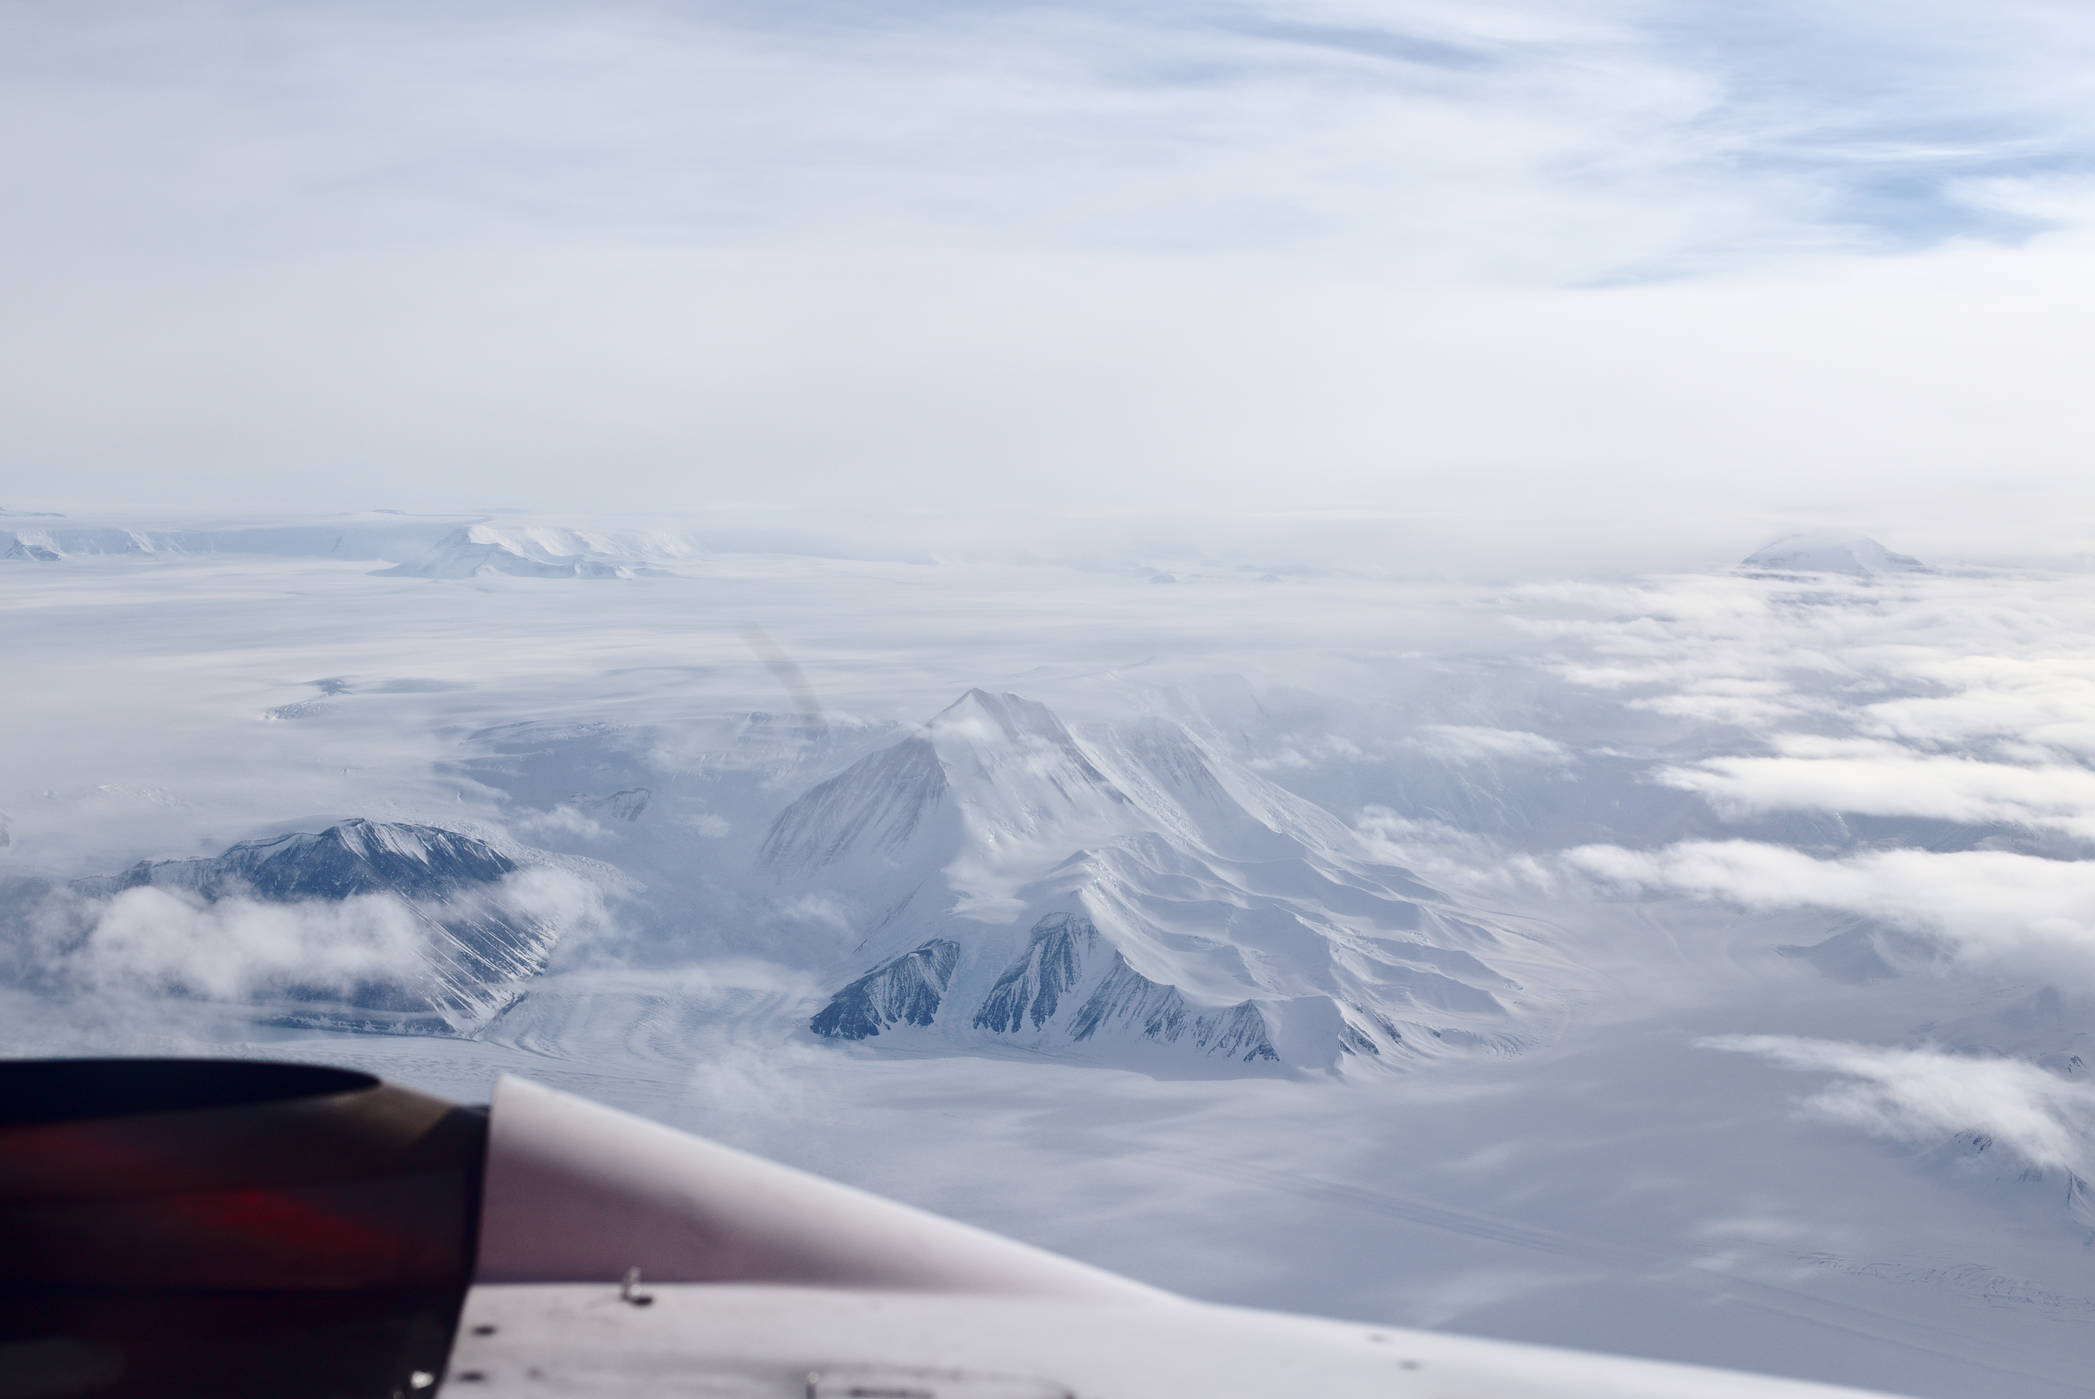 After two hours we finally reach the Trans-Antarctic mountains